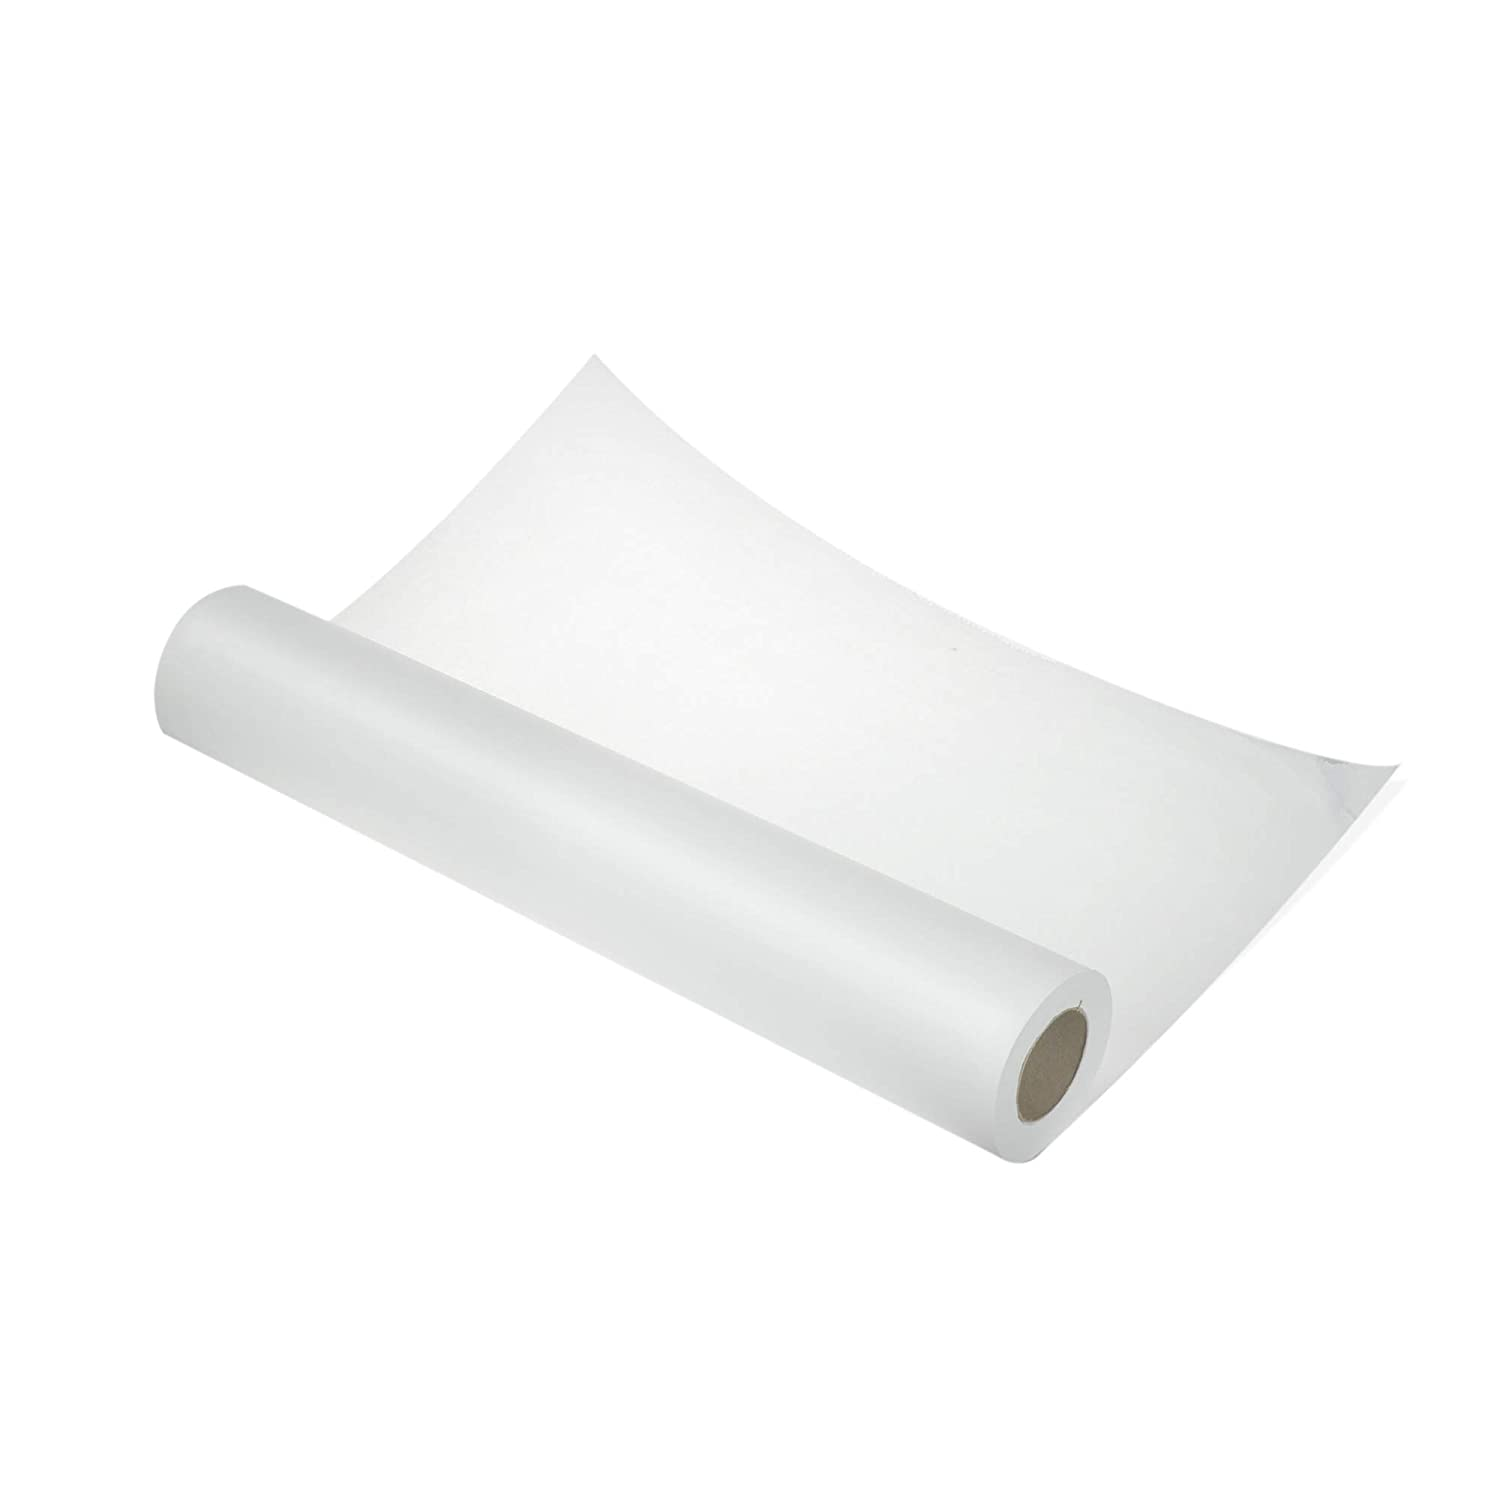 1 Roll Dealmed Smooth Table Paper for Pattern-Making 18 x 225 ft Drafting and Tracing White